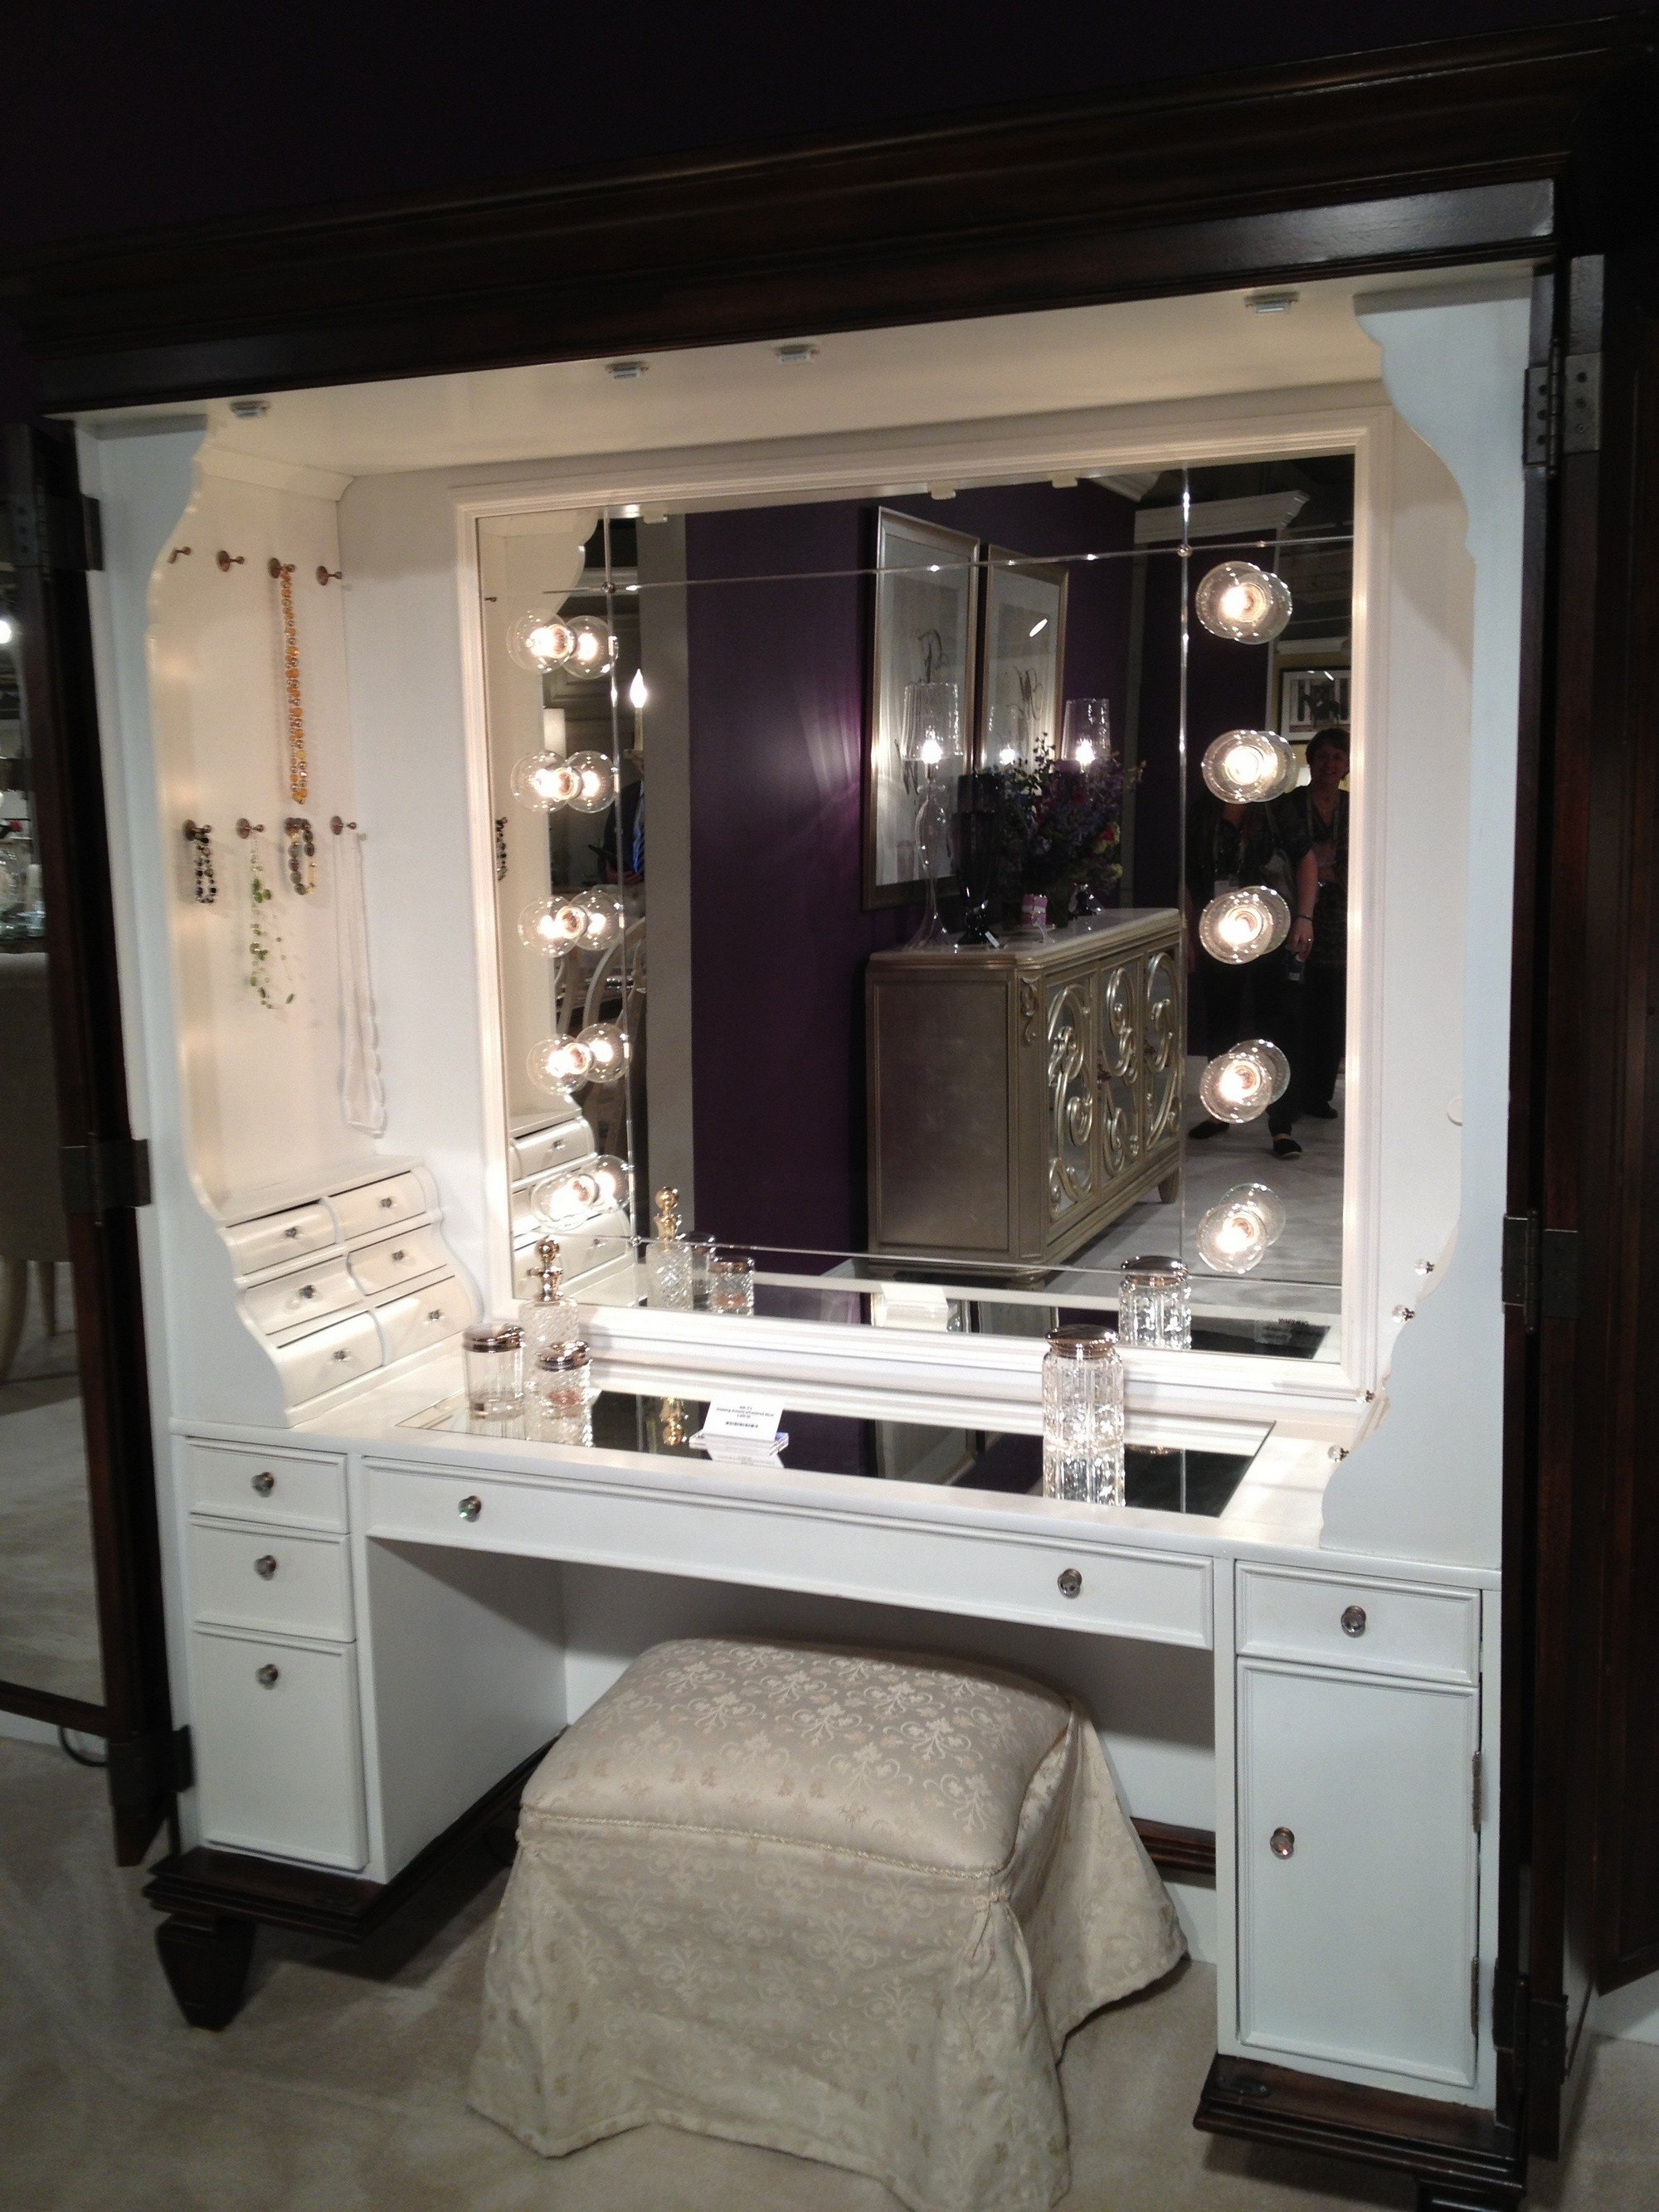 Furniture Large Modern Makeup Vanity Storage E Kissthekid Com With Regard To Contemporary Dressing Table Mirrors (Image 10 of 15)